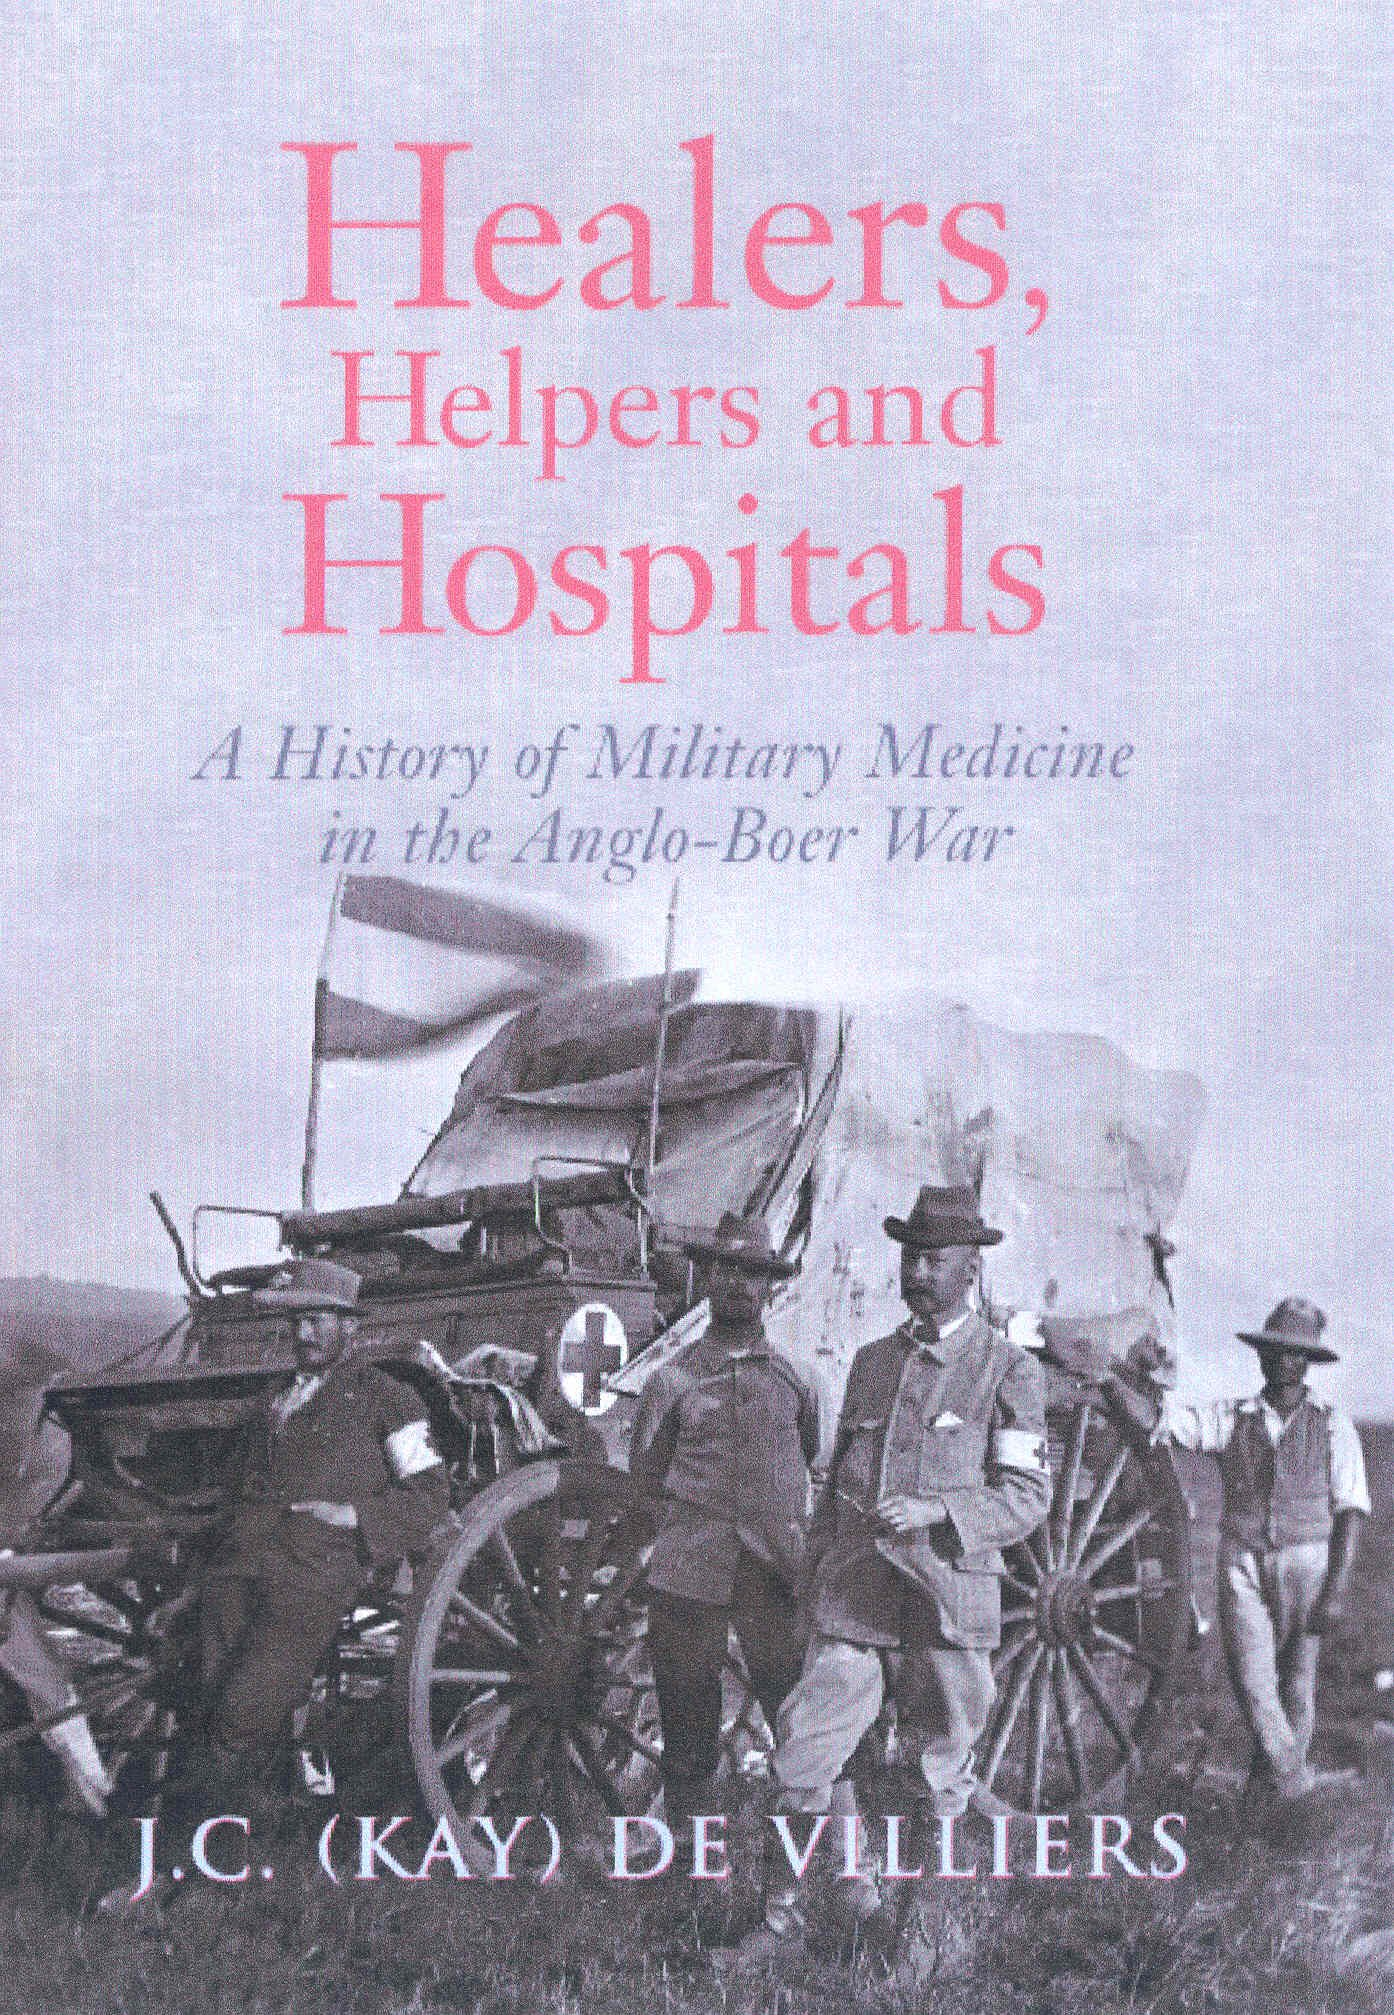 Healers, Helpers and Hospitals: A History of Military